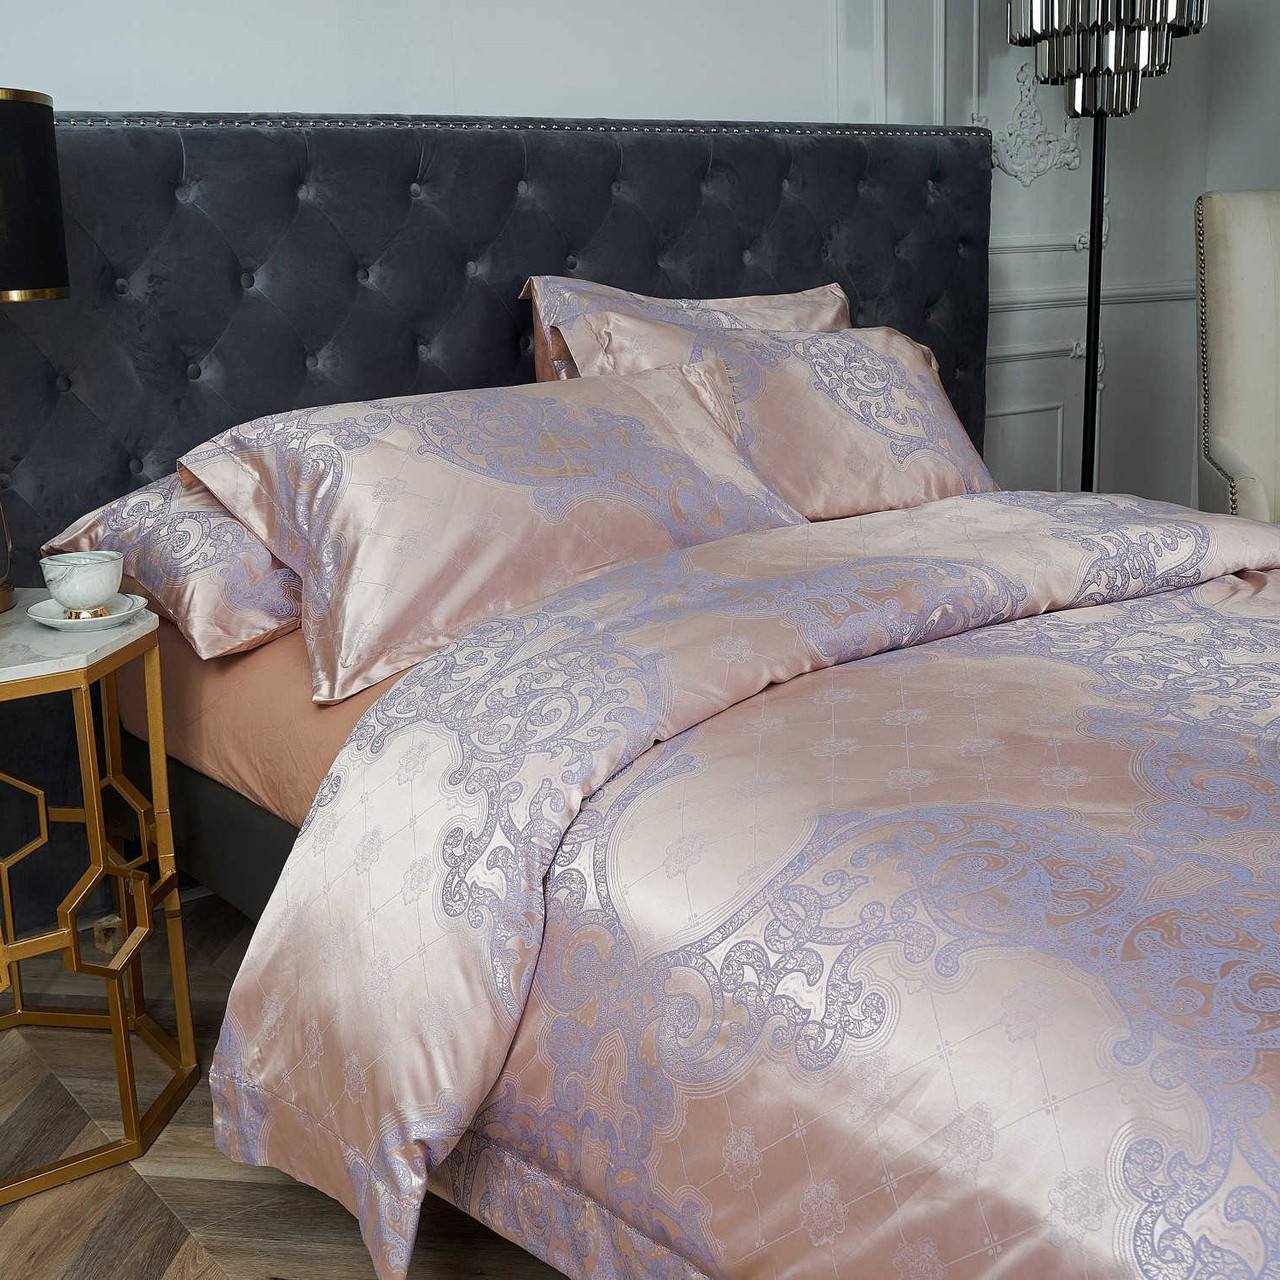 Dropshipping Wholesale-Luxury Jacquard Material Dolce-Mela Bedding DM805Q